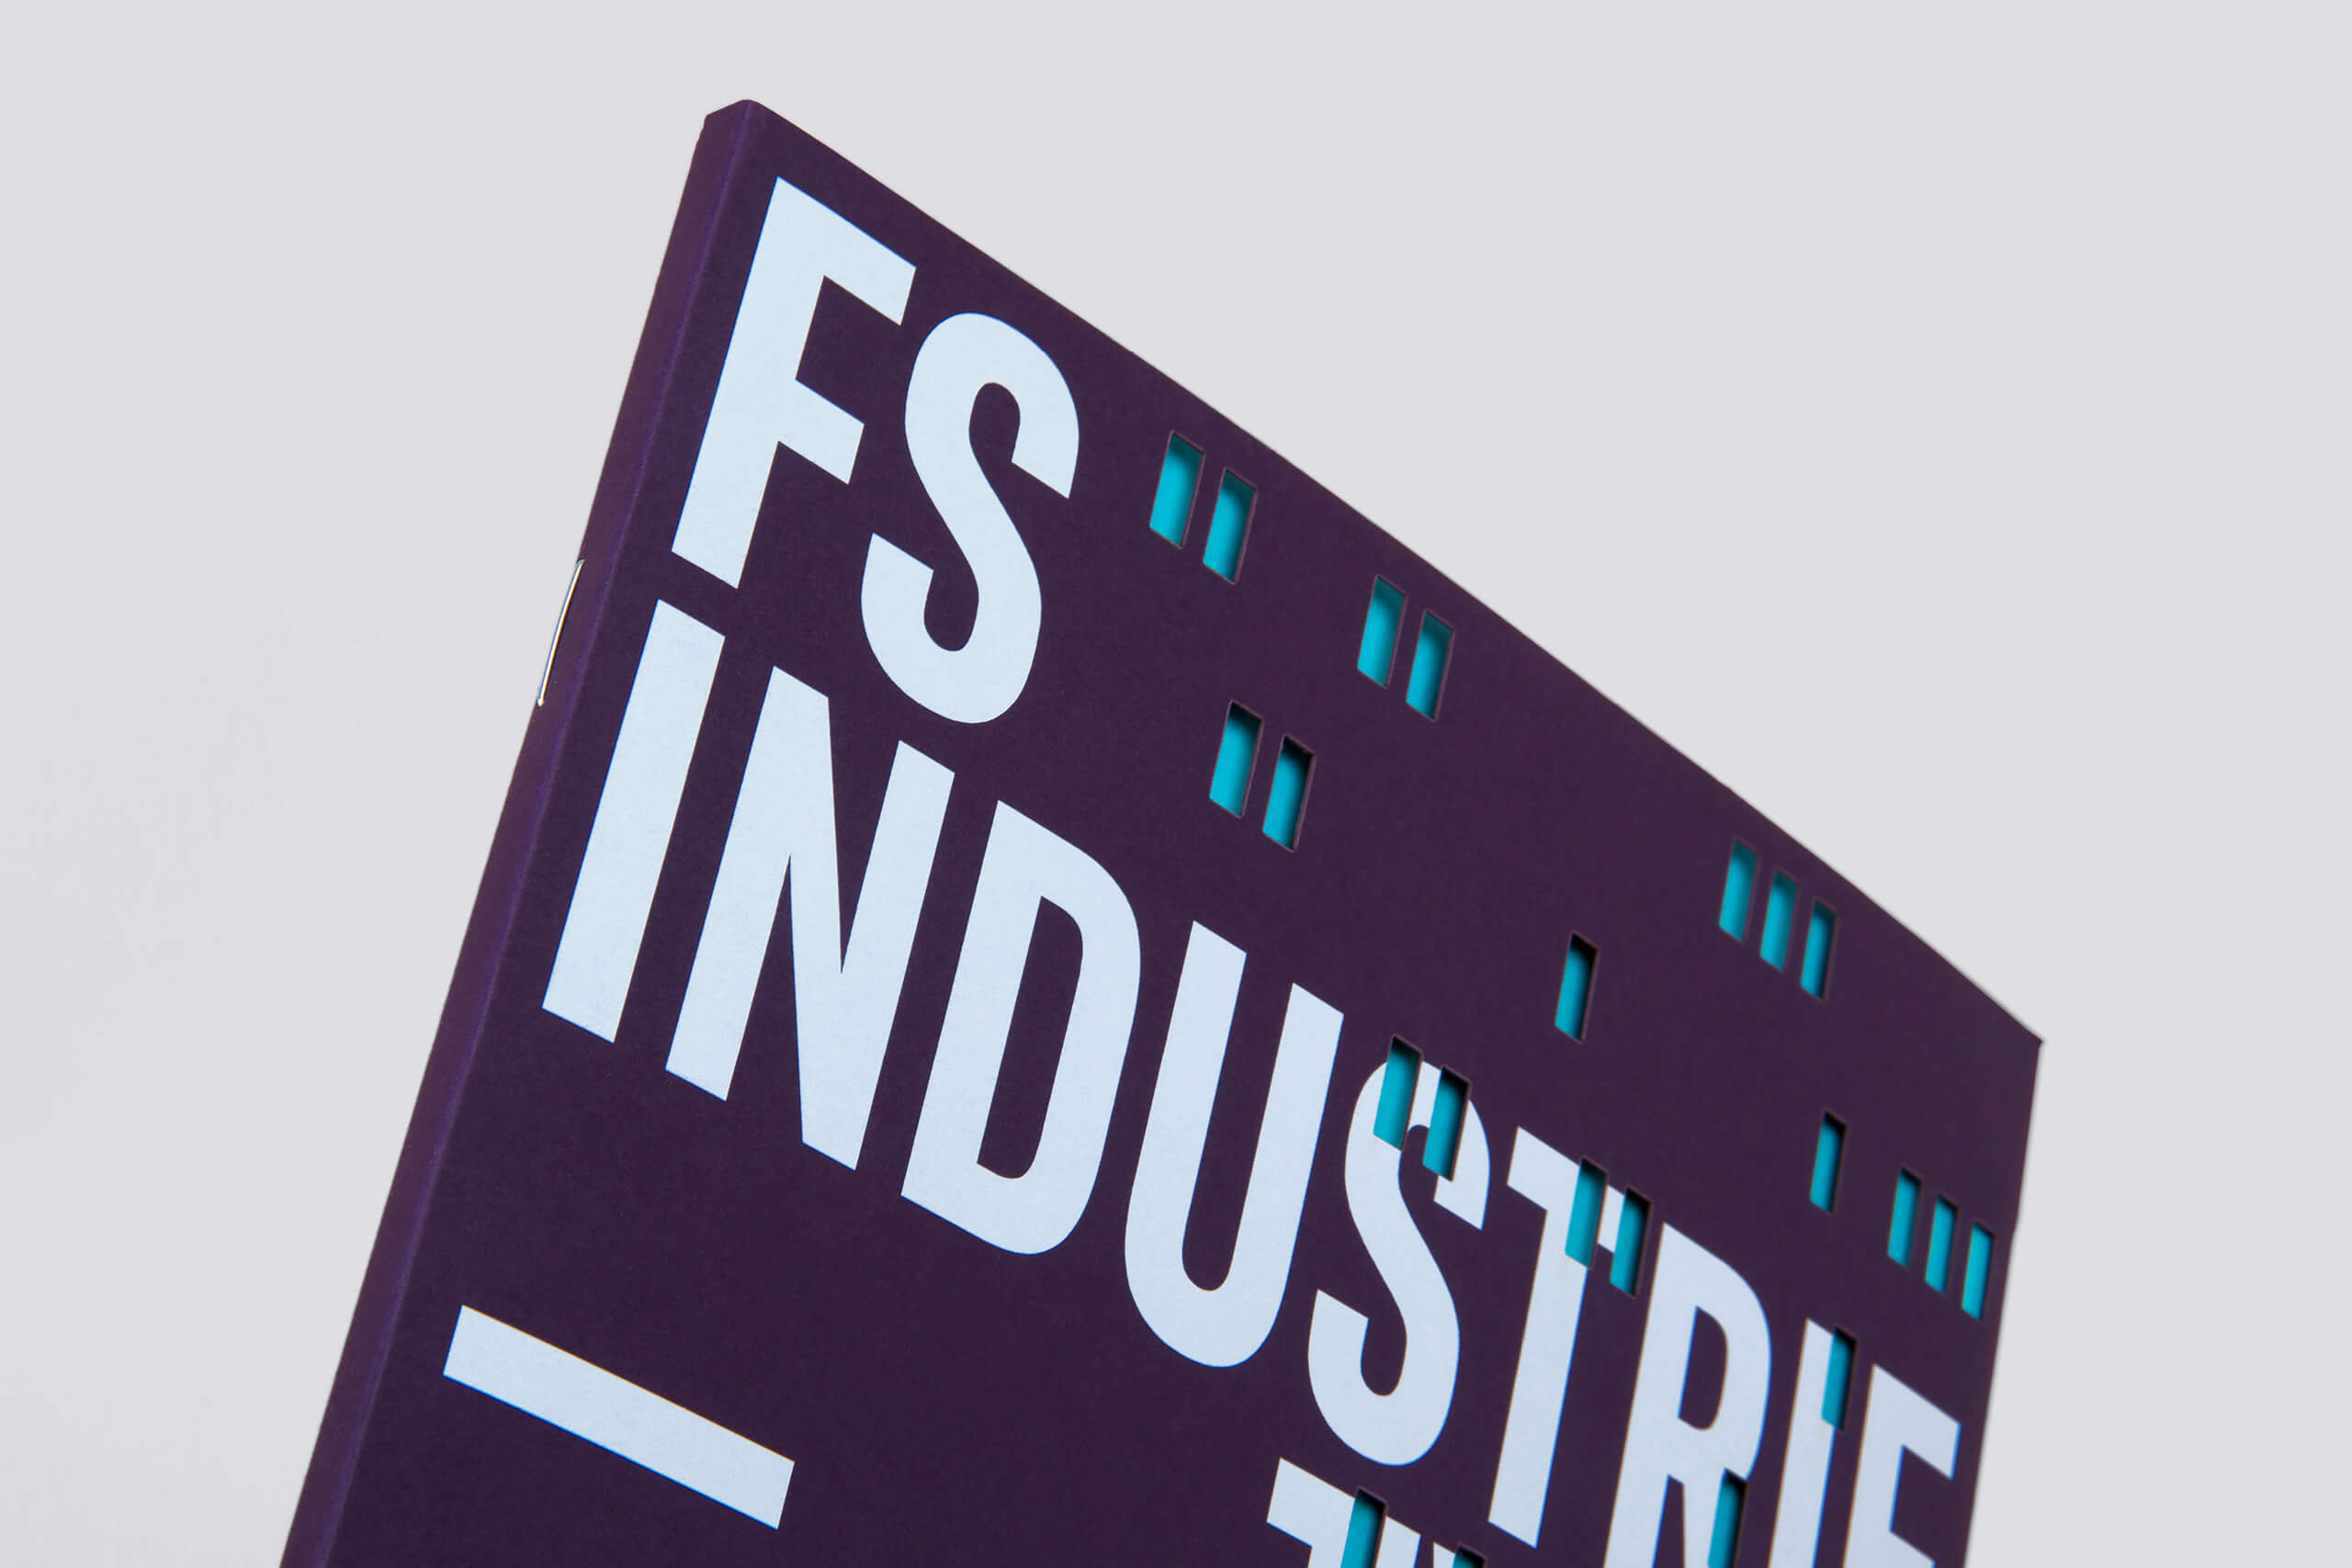 Fontsmith - FS Industrie launch